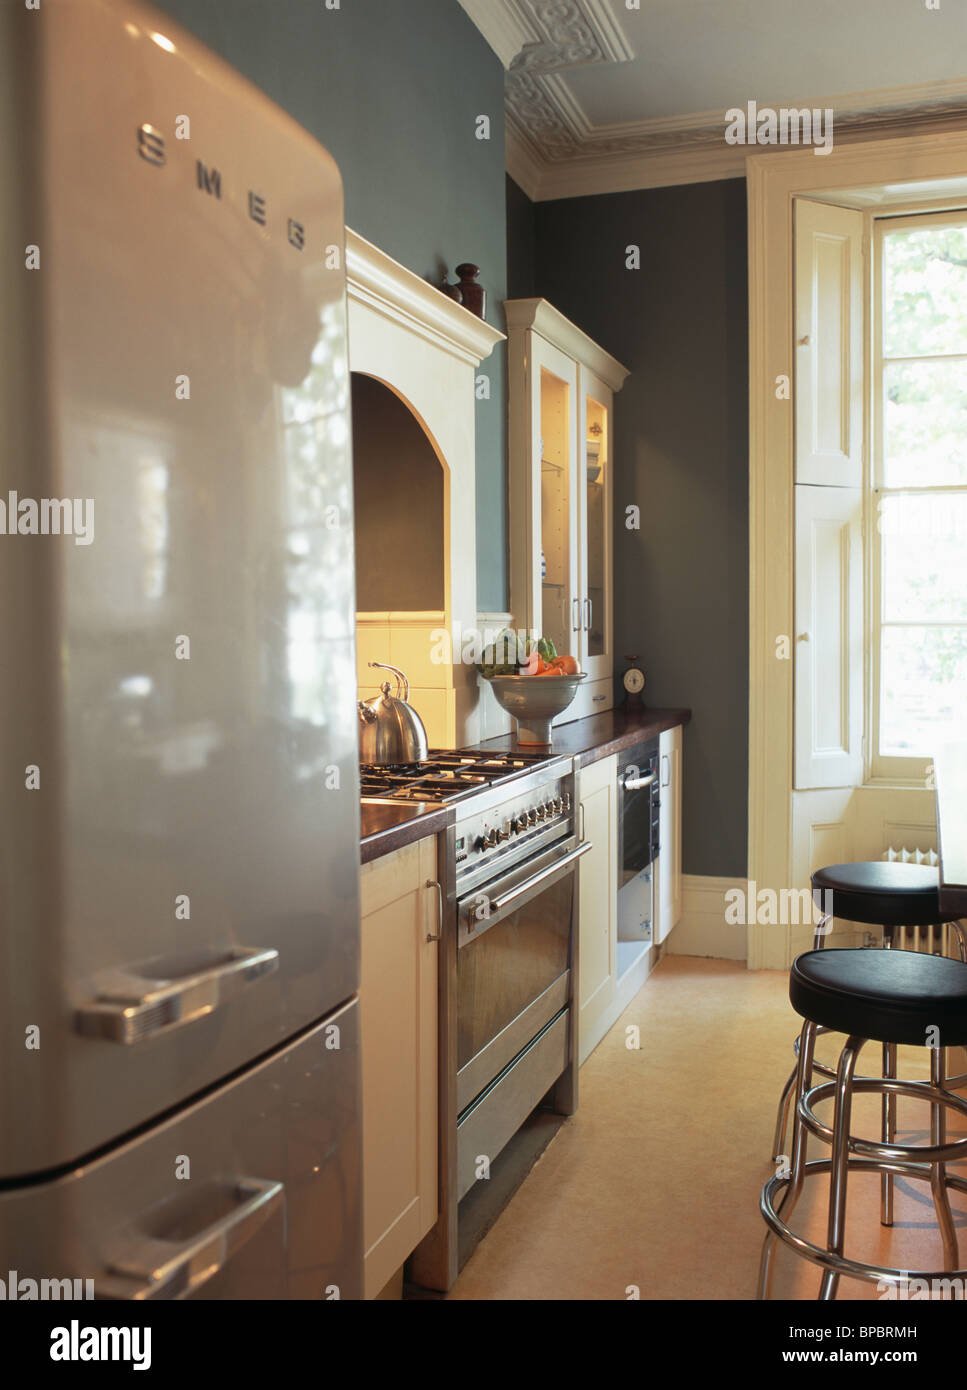 smeg fridge freezer in gray blue townhouse kitchen with wooden stock photo 30992881 alamy. Black Bedroom Furniture Sets. Home Design Ideas